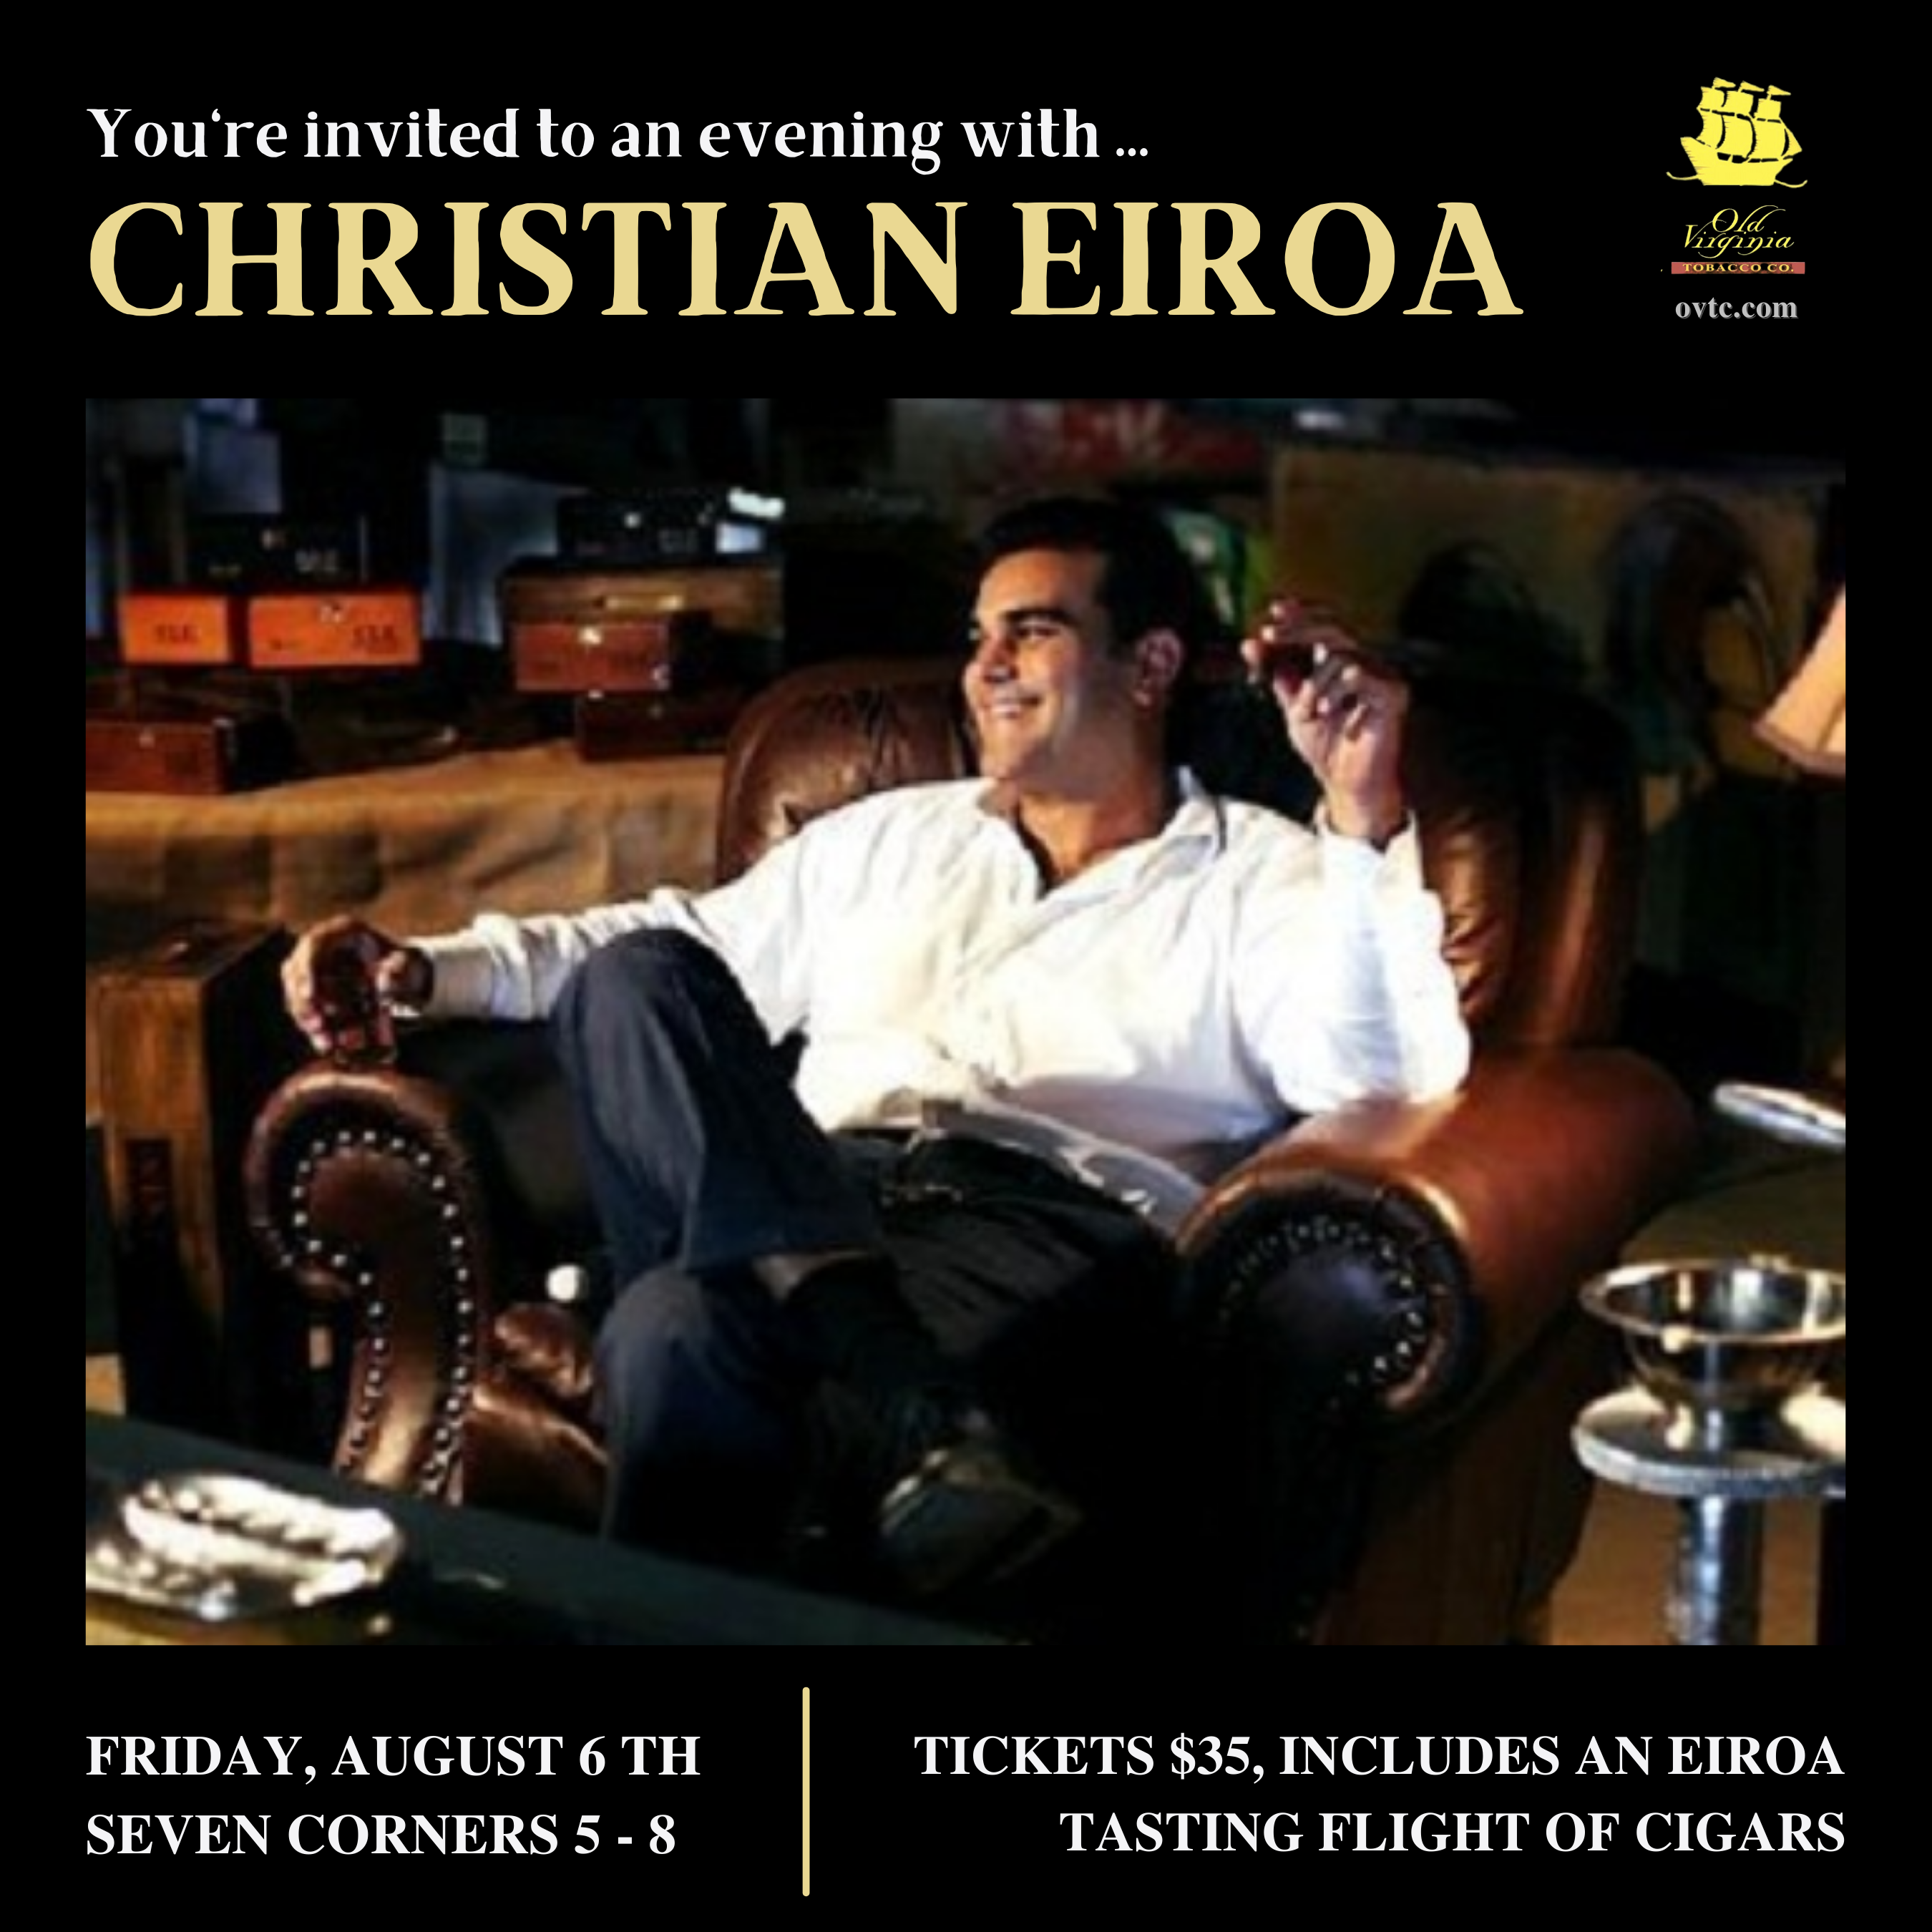 An Evening with Christian Eiroa in Seven Corners